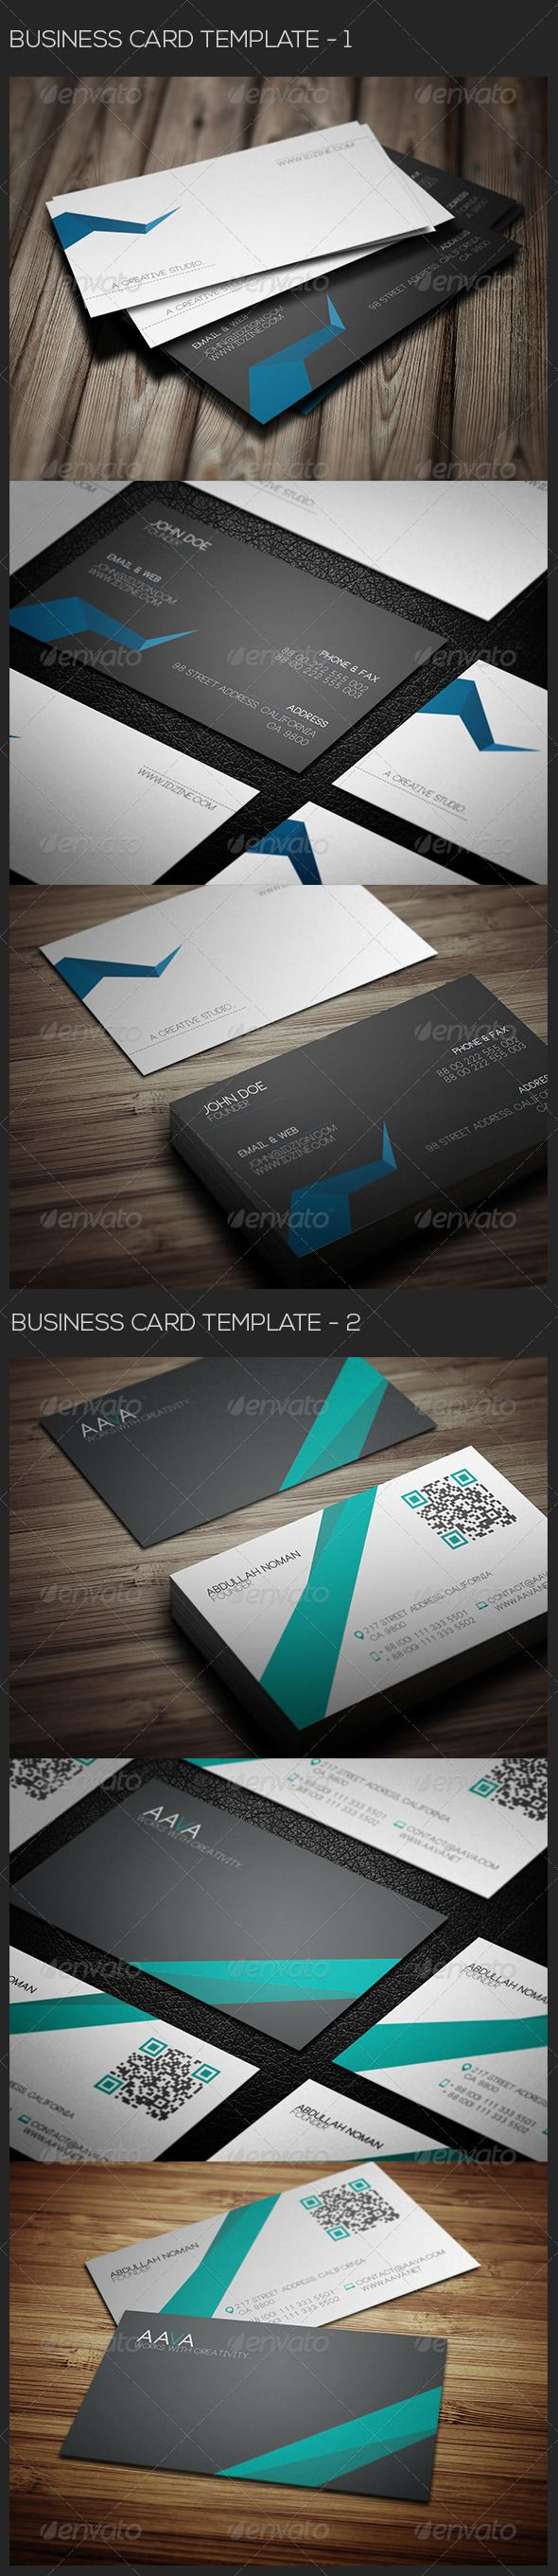 101 best print templates images on pinterest print templates font buy professional business card bundle by abdullahnoman on graphicriver professional business cards bundle 2 in designs description cmyk setting with b reheart Gallery